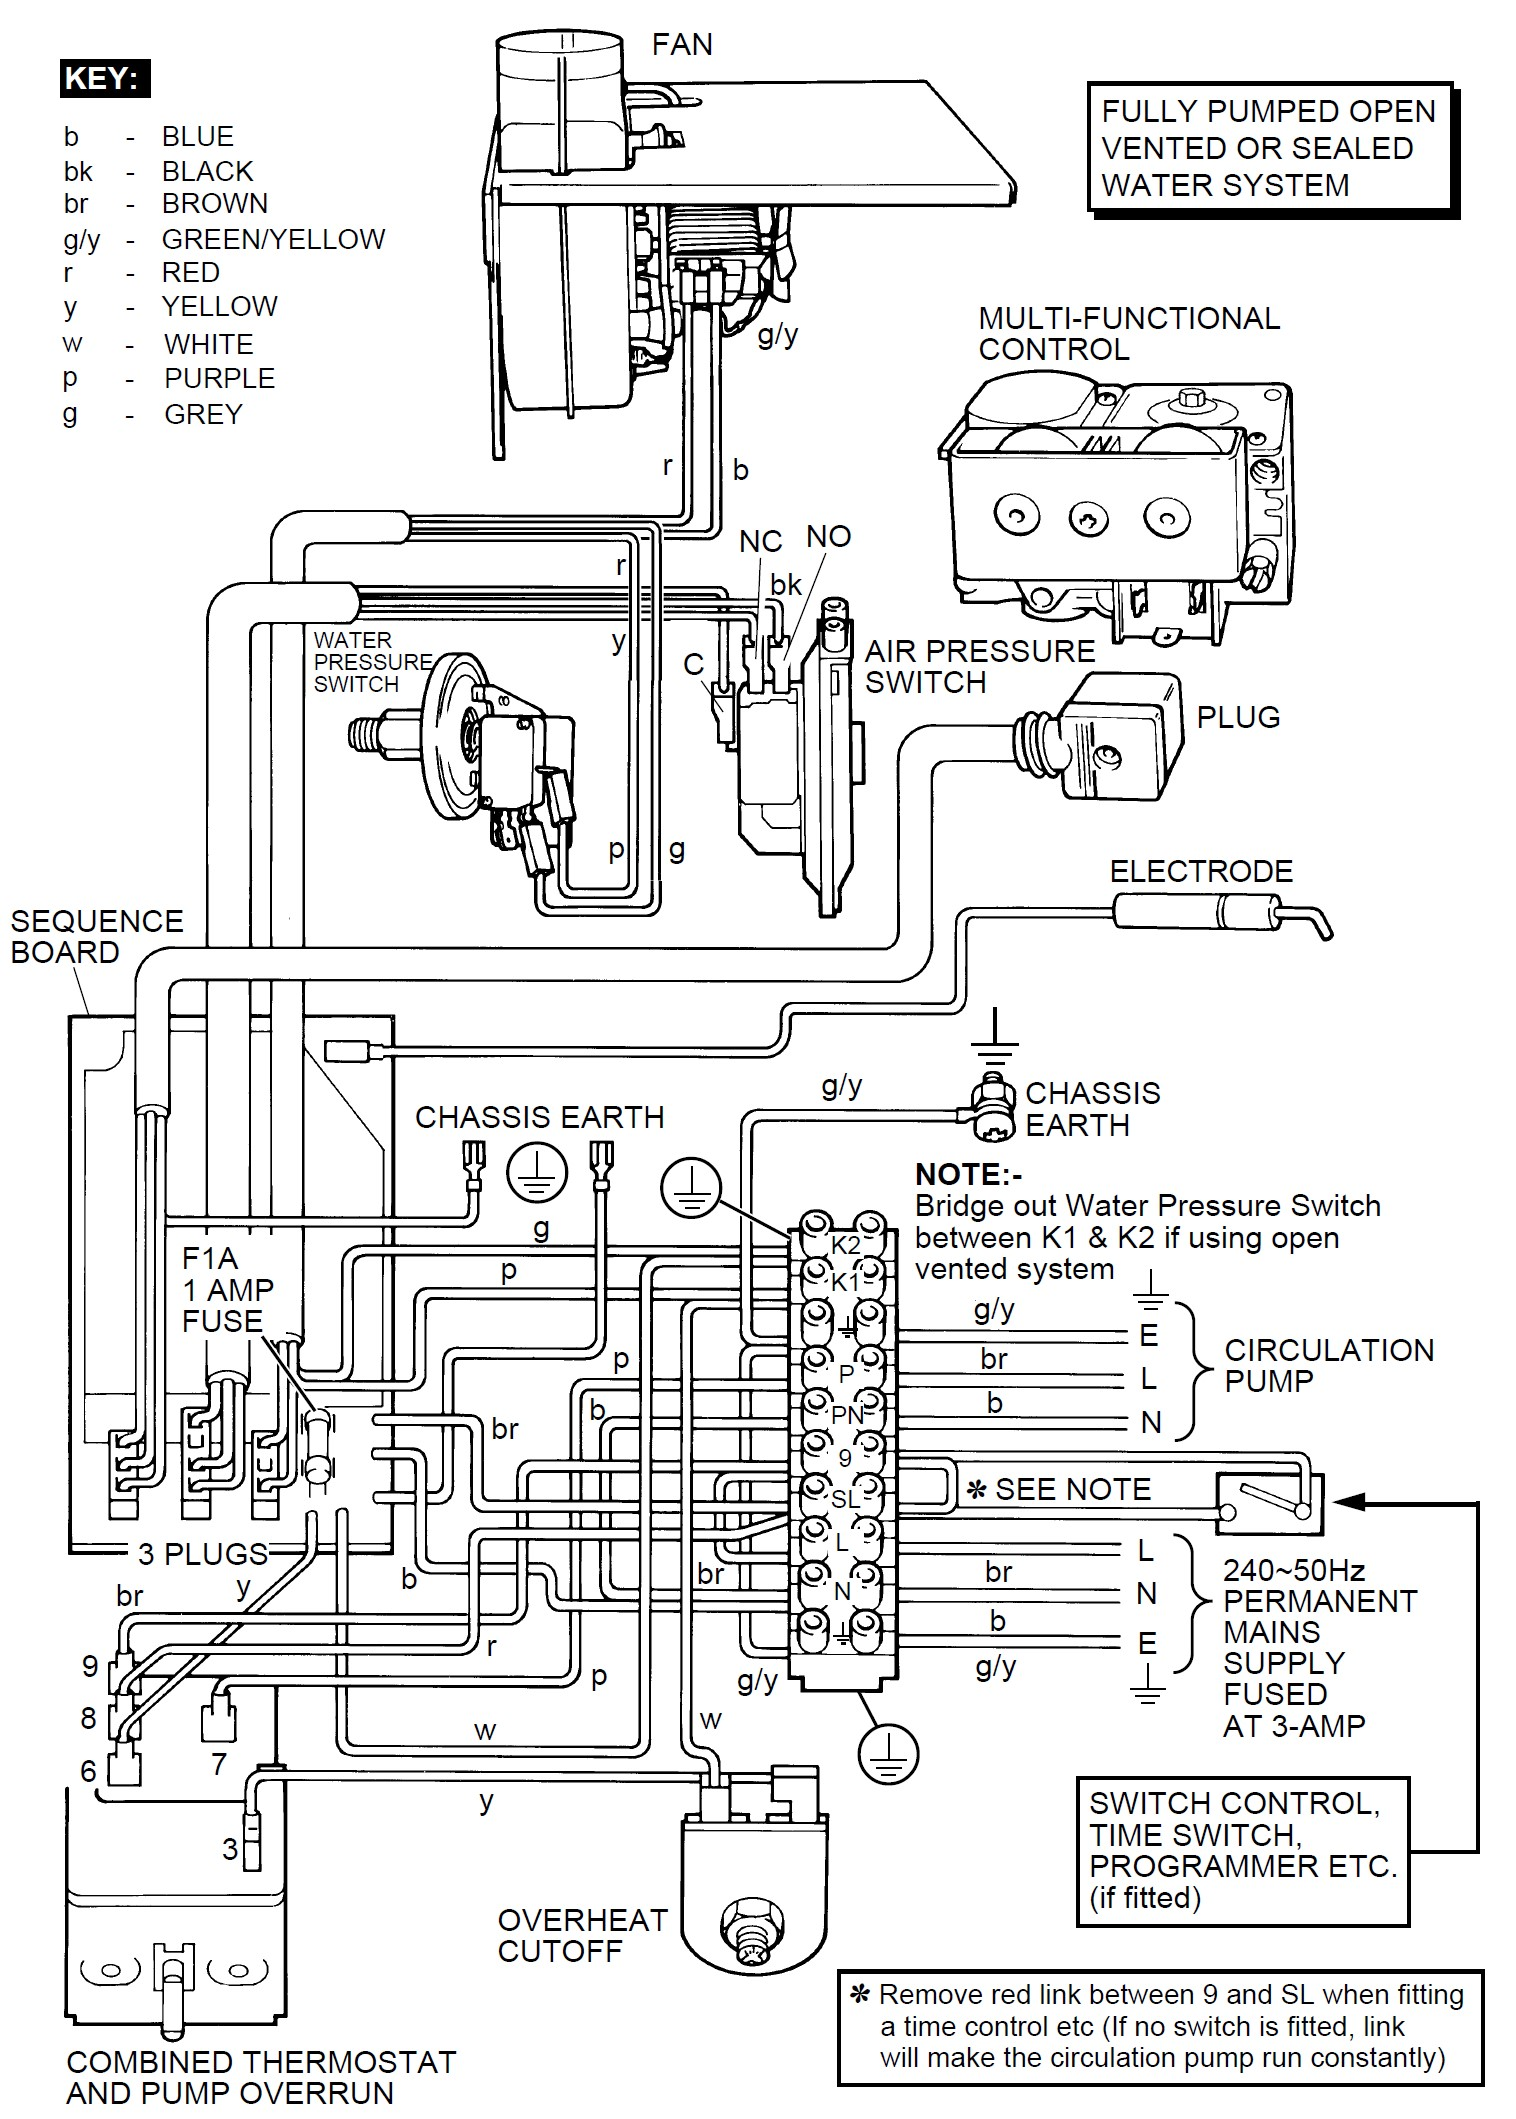 c plan wiring diagram with pump overrun single line in power system ask glow worm